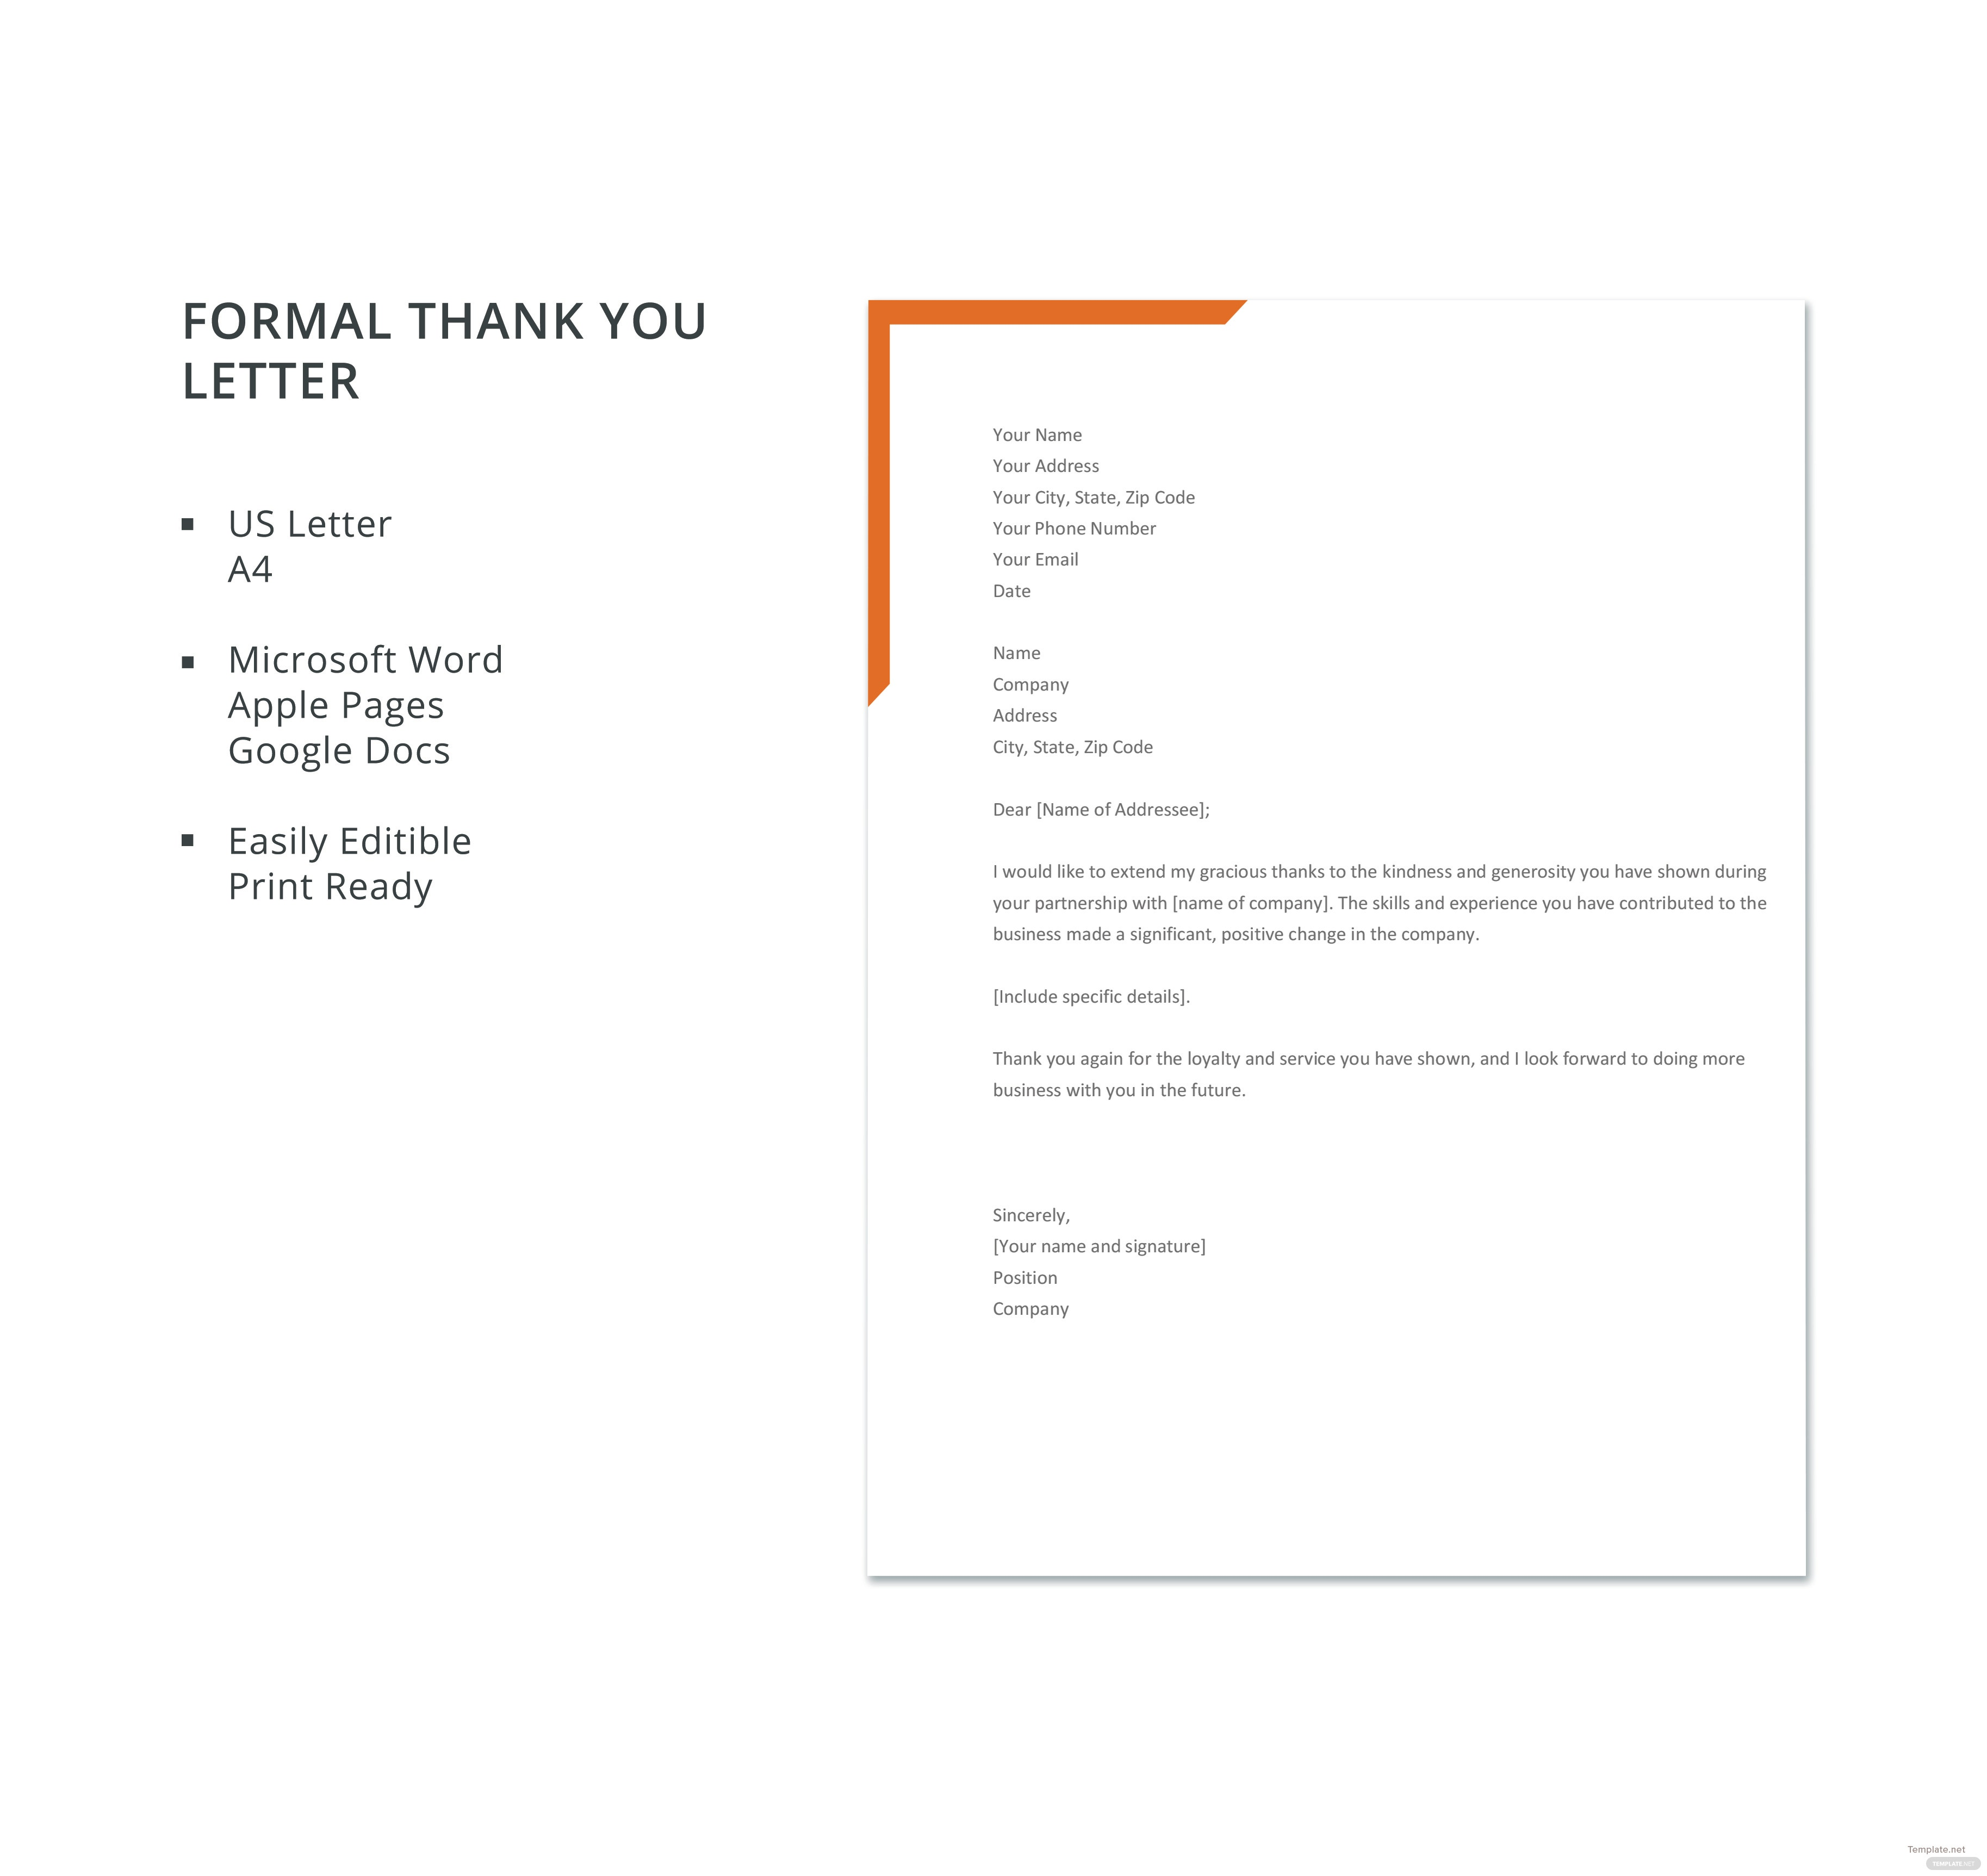 Free formal thank you letter template in microsoft word apple pages free formal thank you letter template spiritdancerdesigns Images